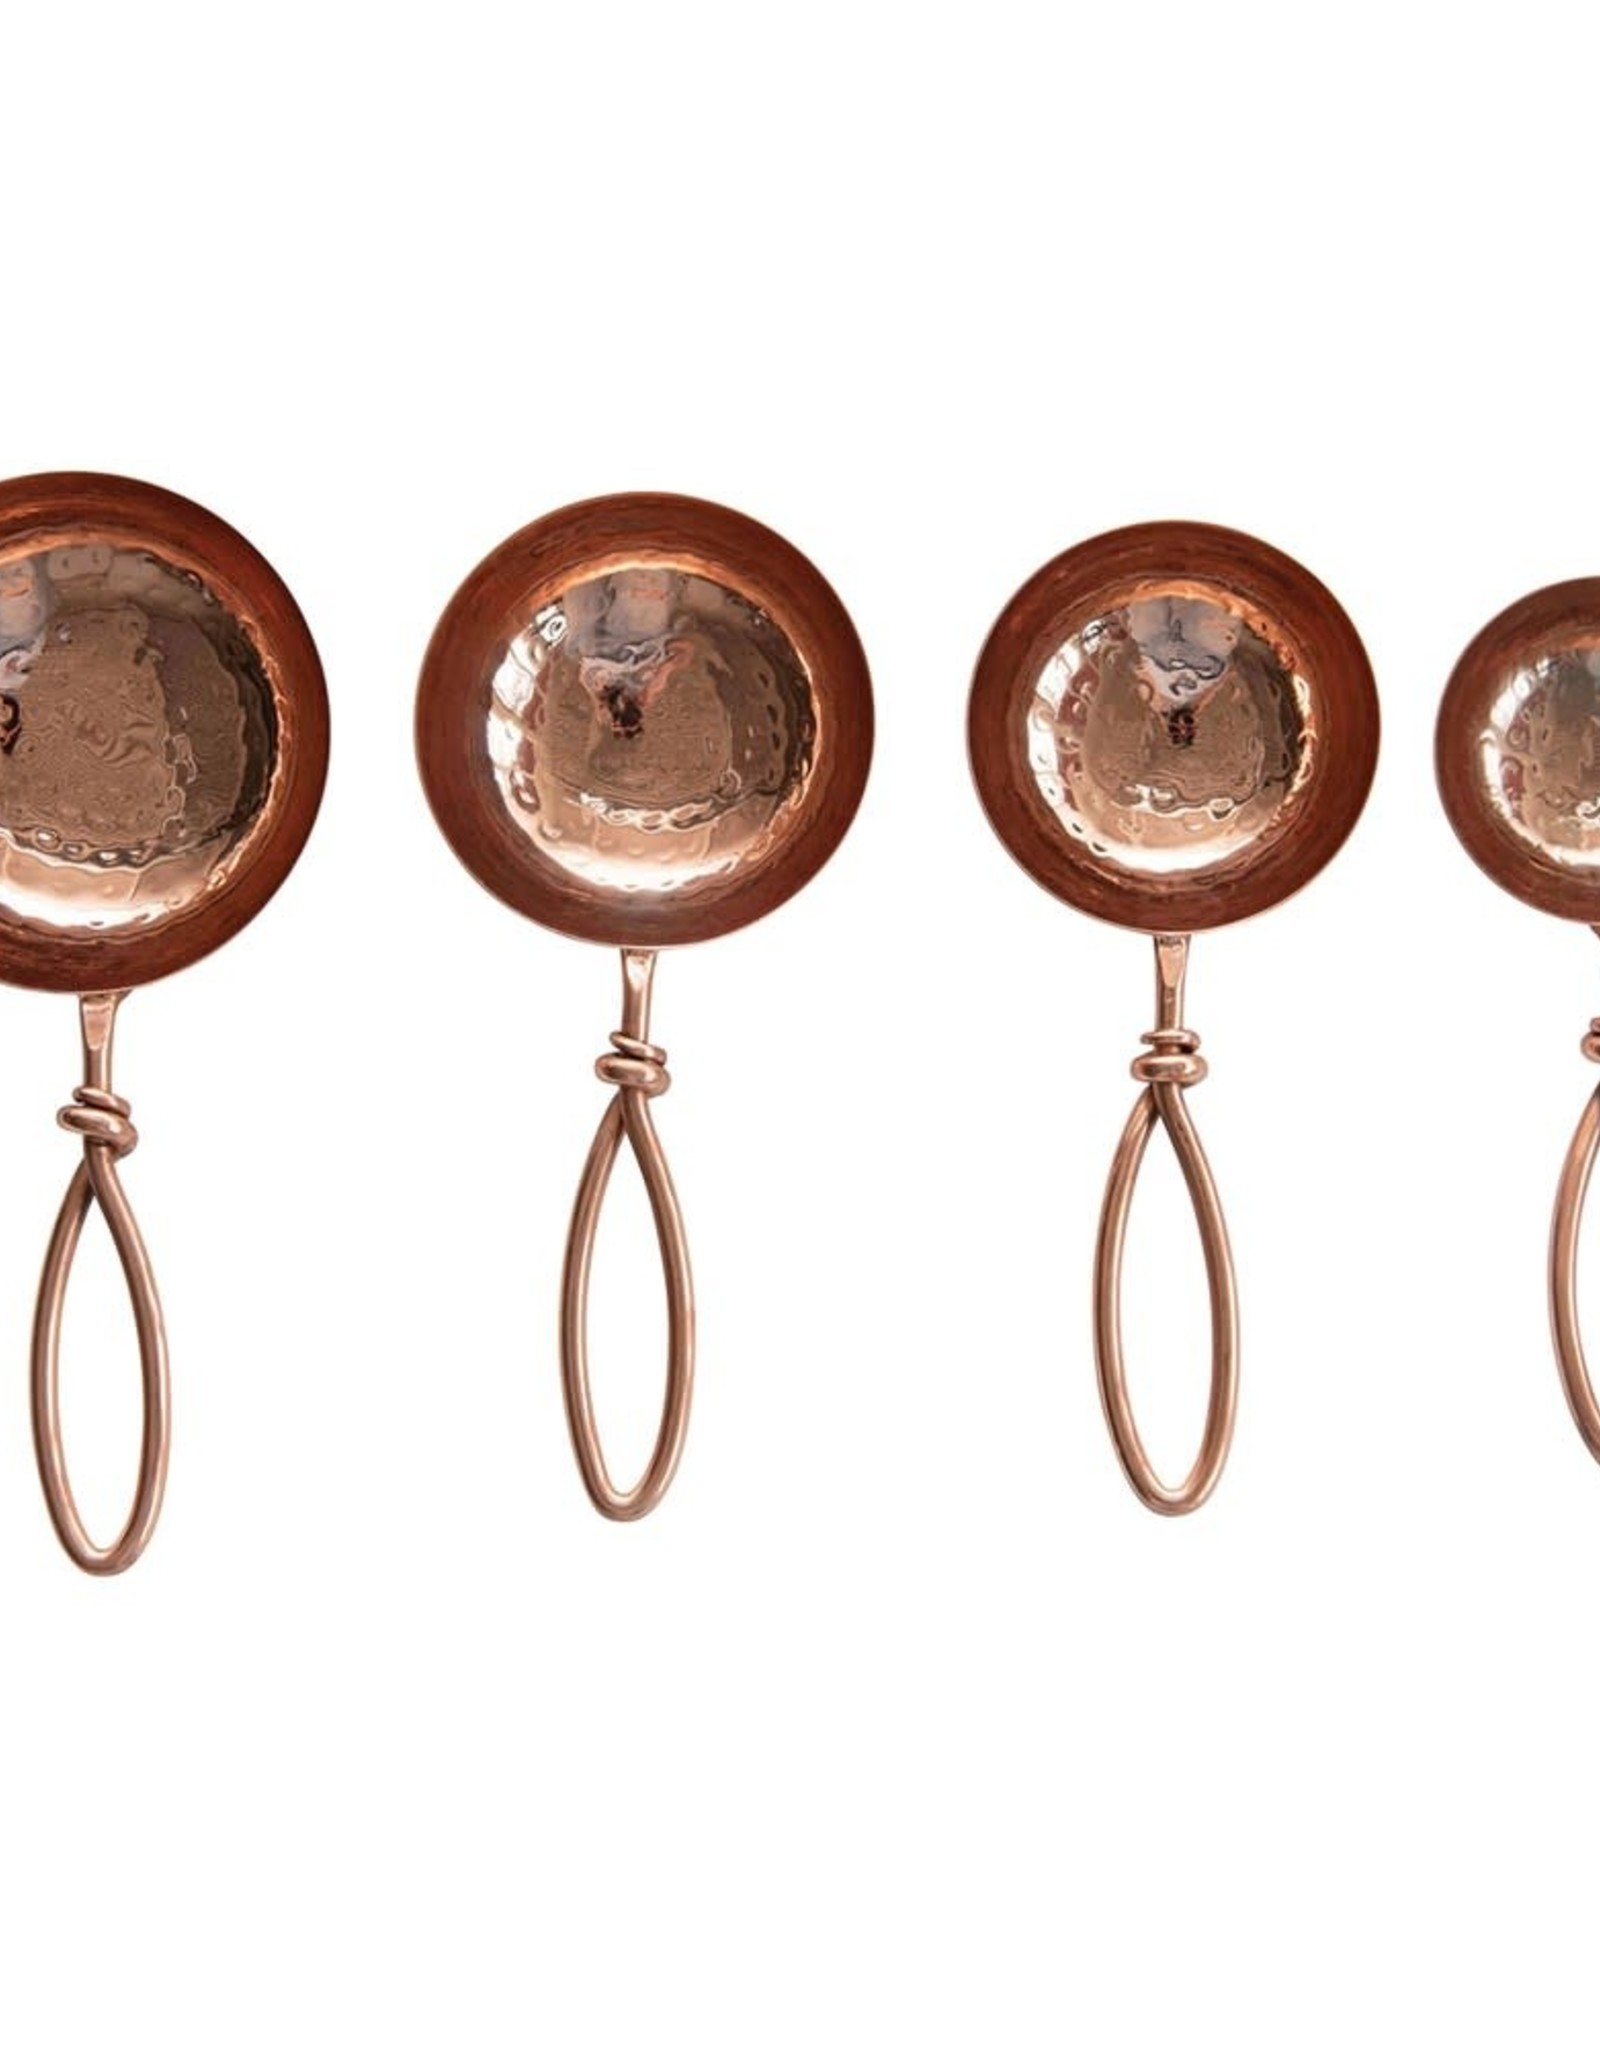 Hammered Copper Plated Stainless Steel Scoops